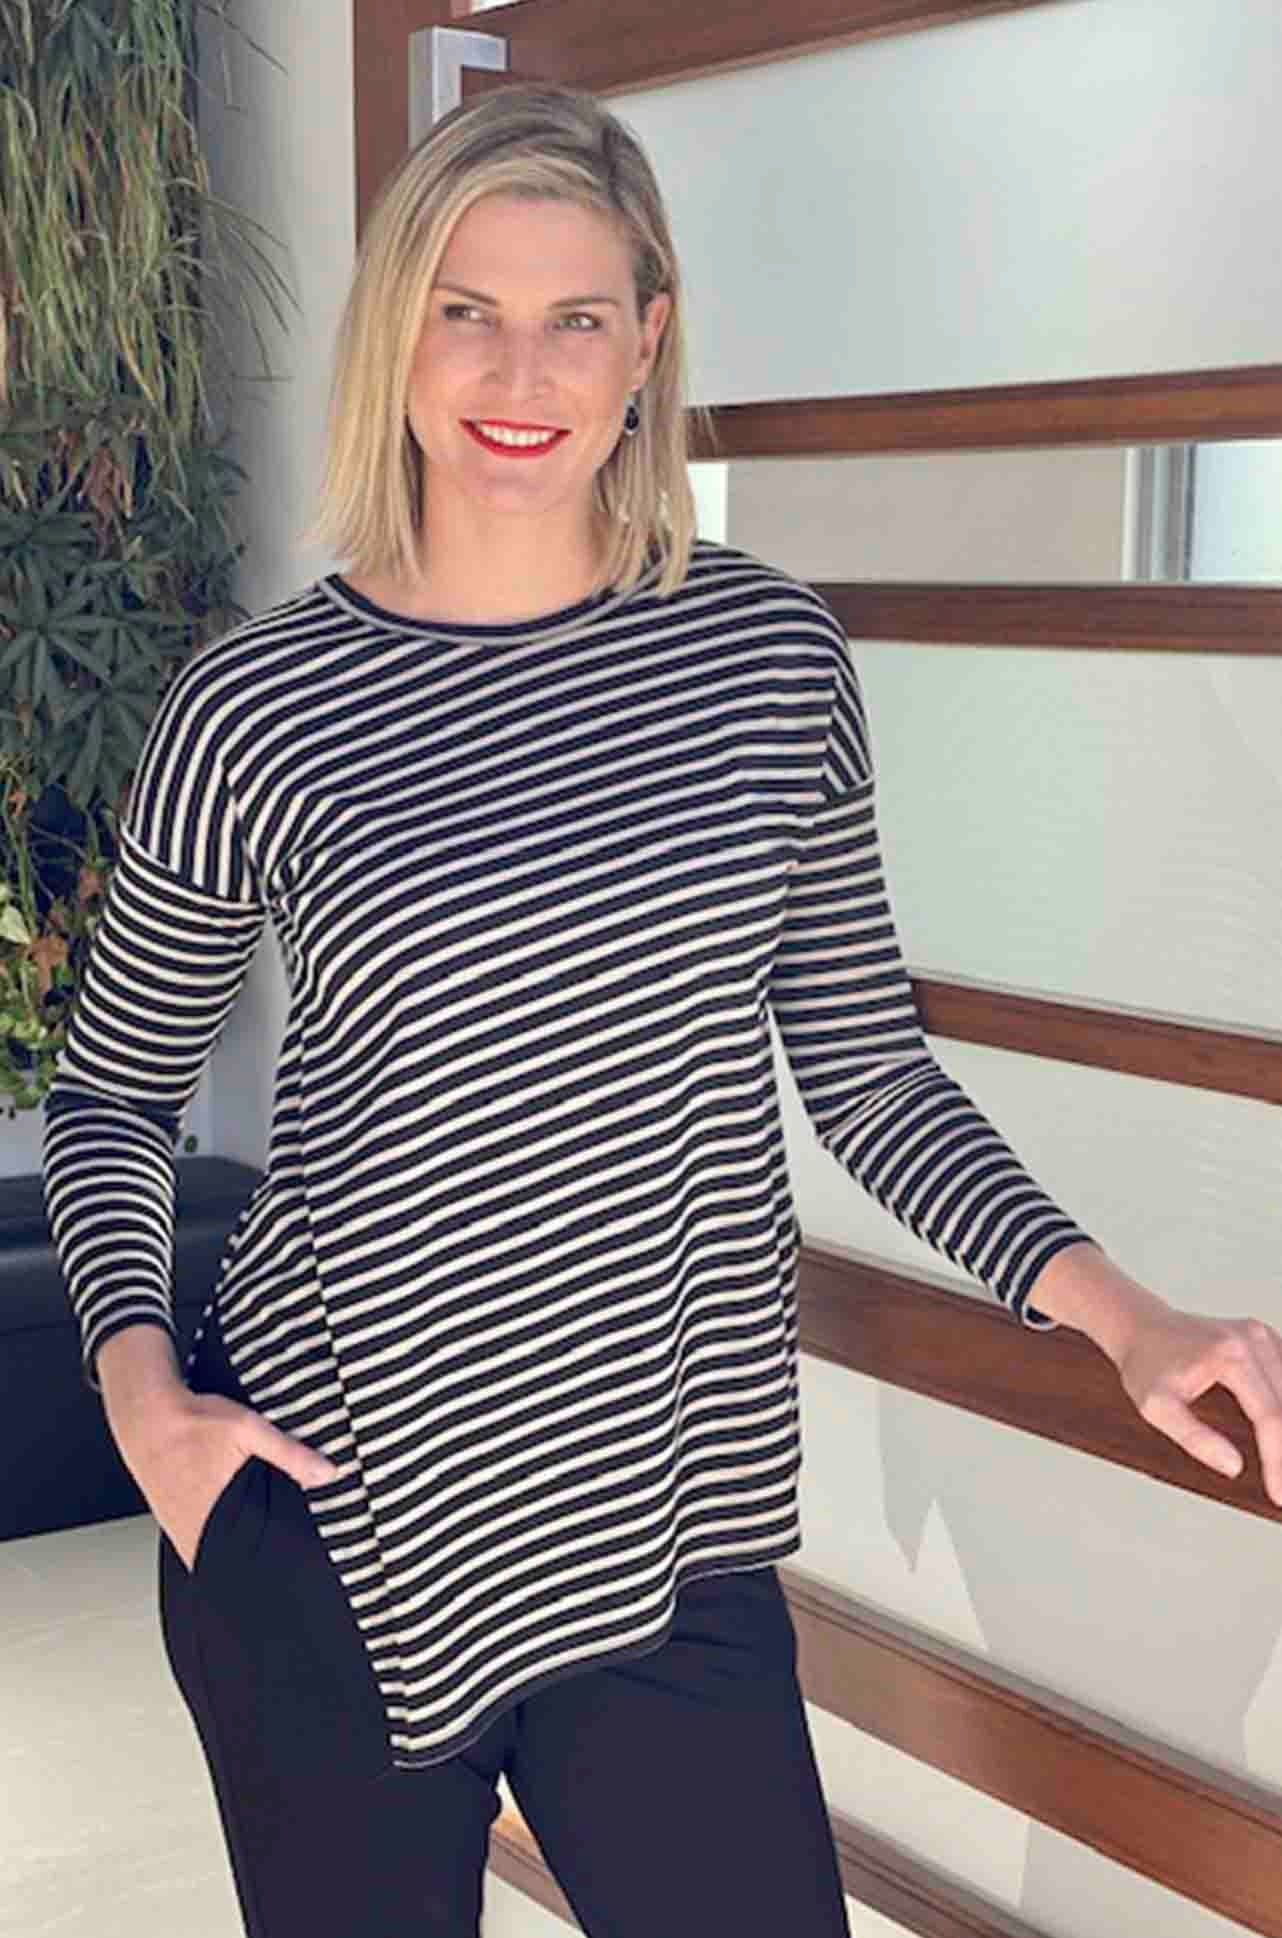 Mela Purdie - Slide On Sweater in Compact Signature Stripe